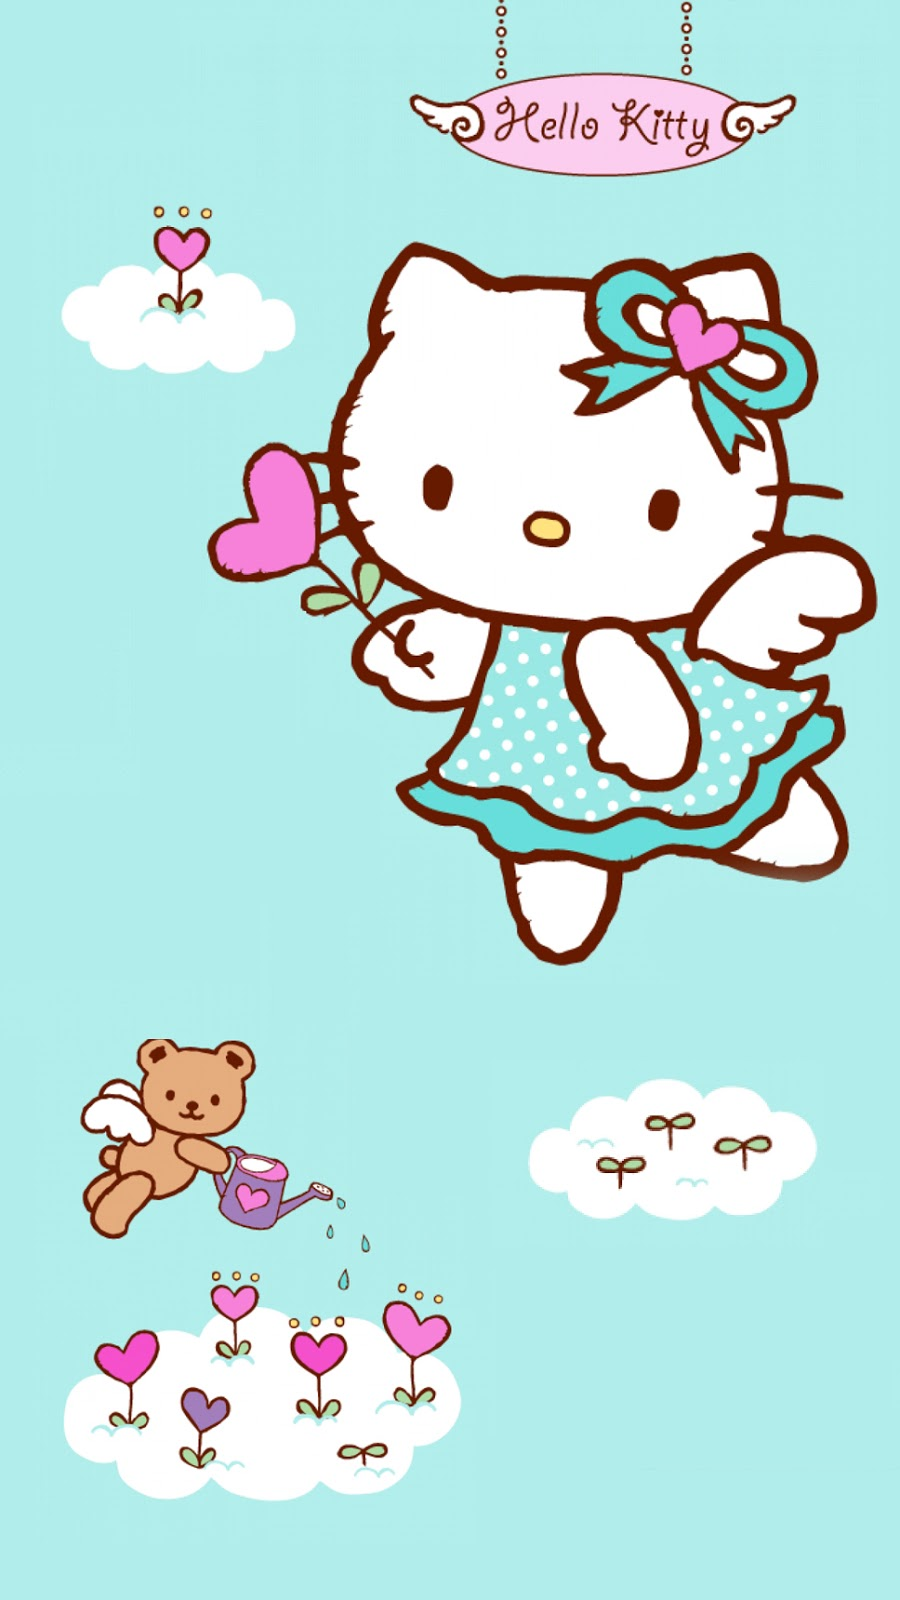 Kumpulan Wallpaper Wa Hello Kitty Pink Lucu